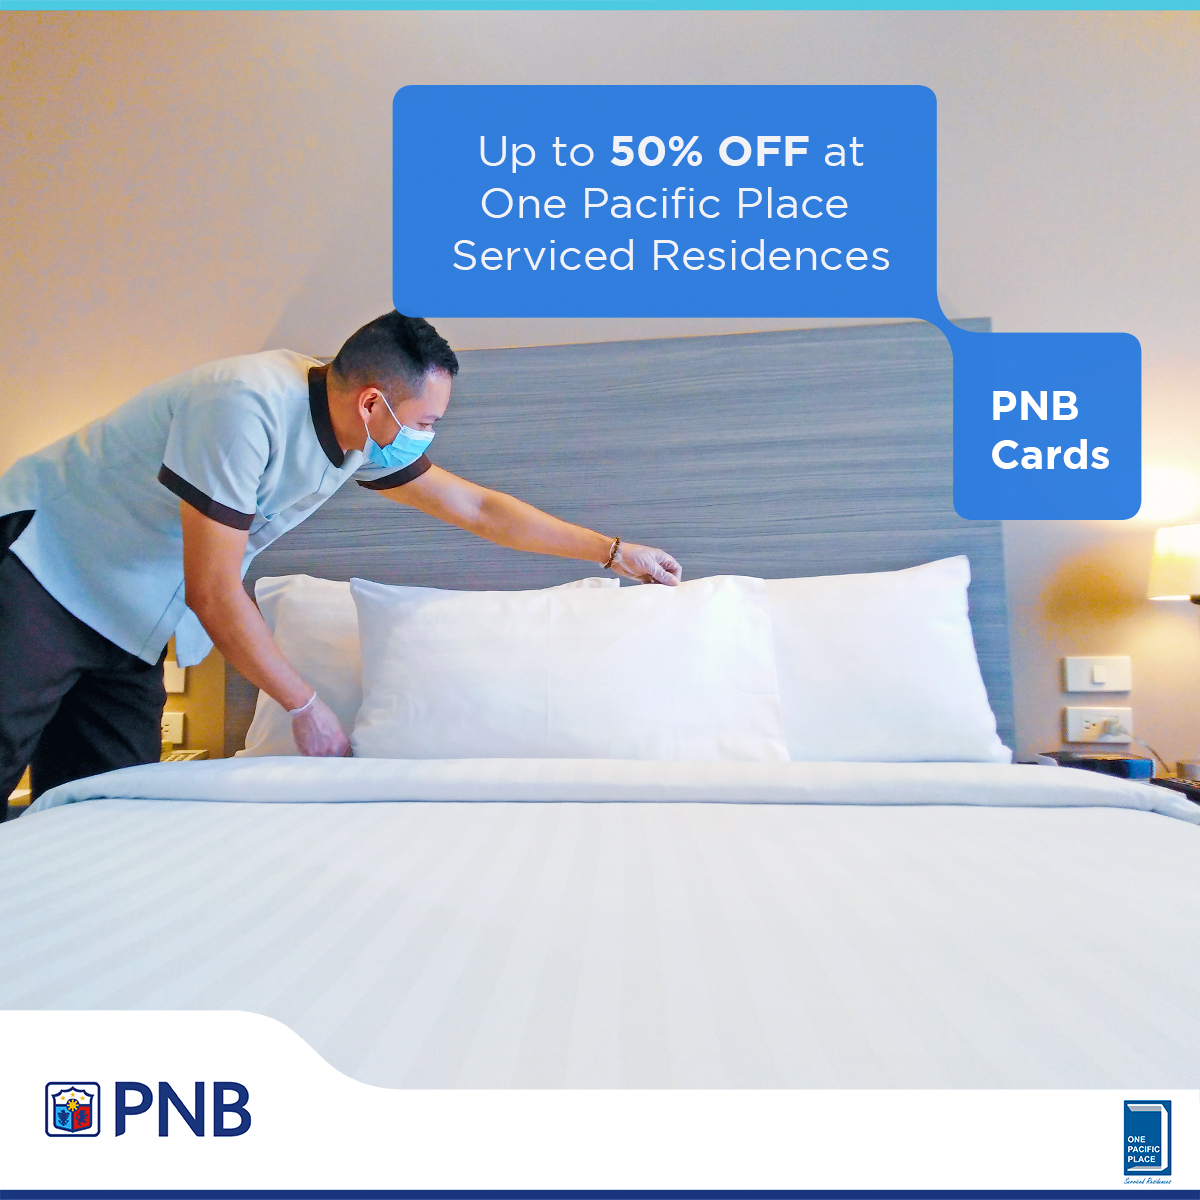 PNB travel deals